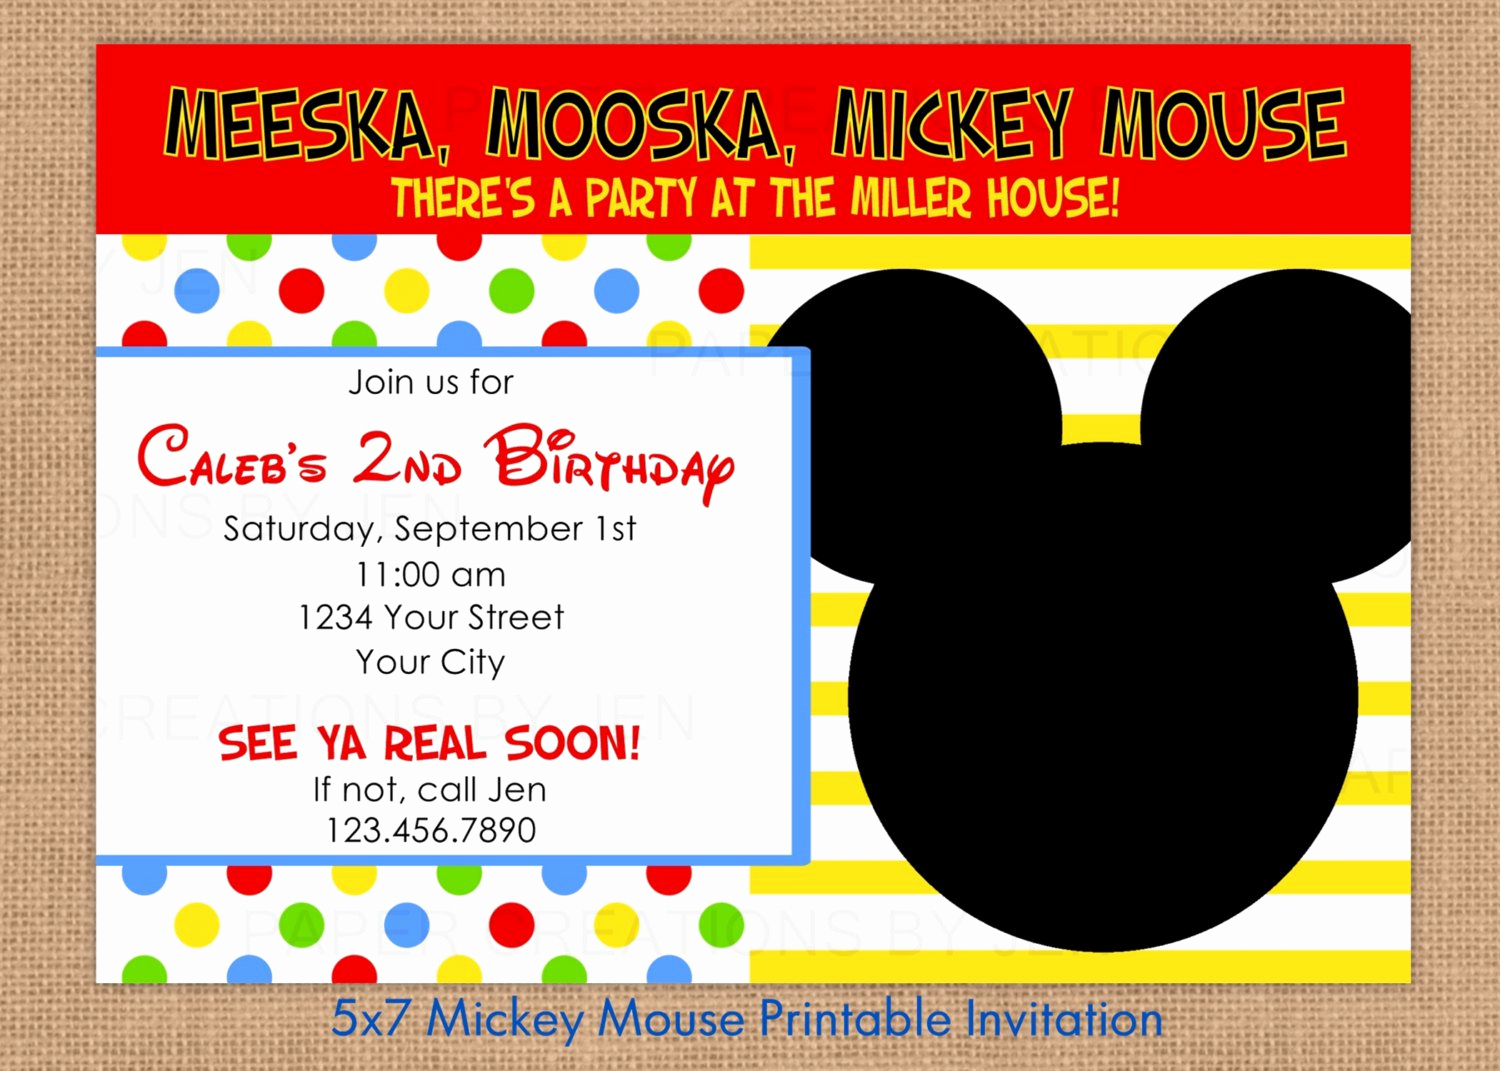 Mickey Mouse Printable Invitation Fresh Mickey Mouse Printable Invitations